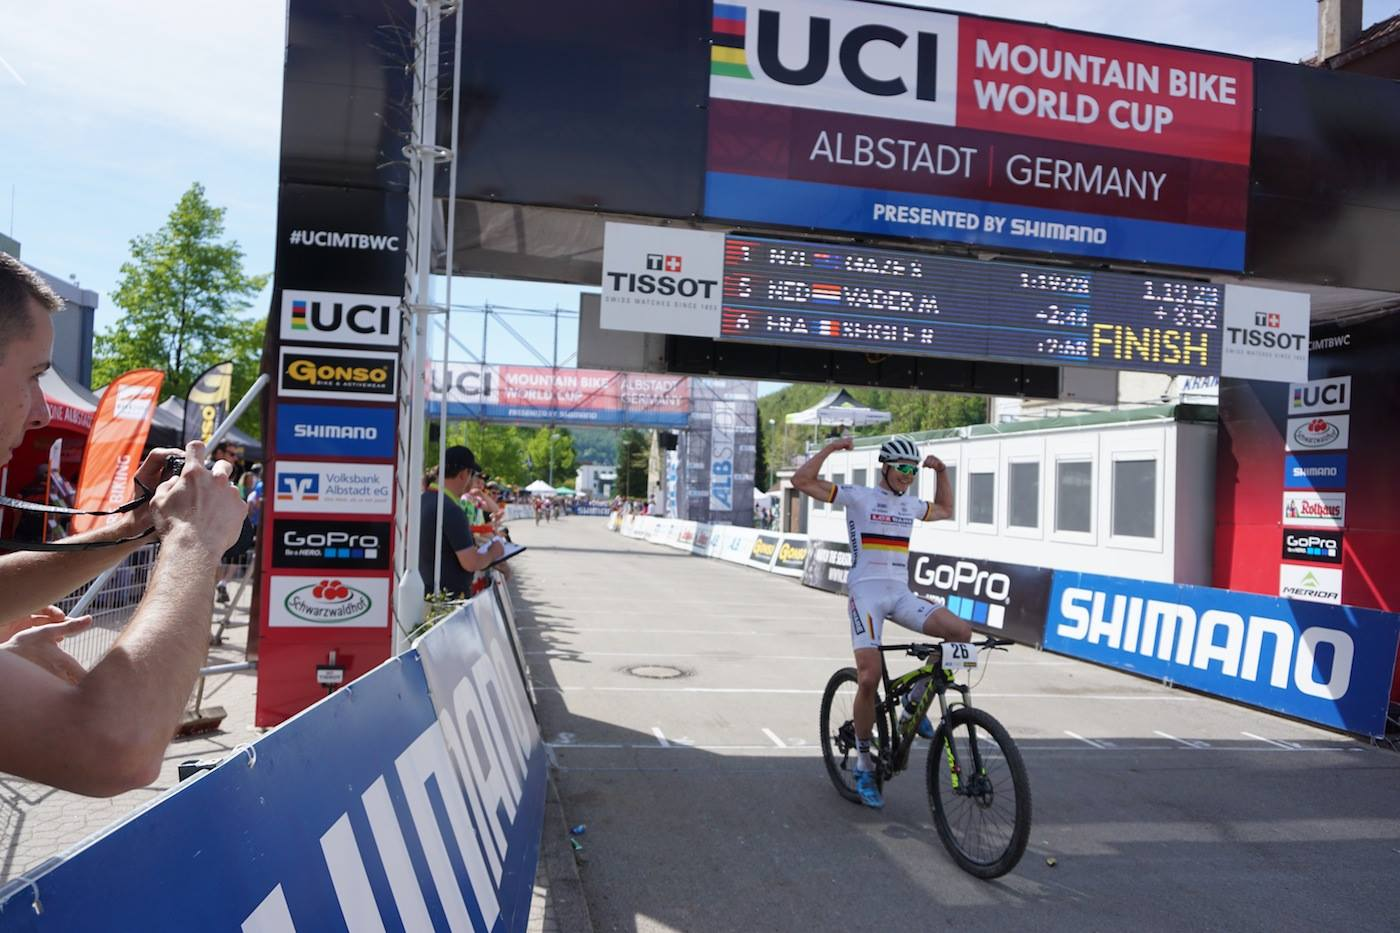 Worldcup Albstadt (GER) // 7th Position